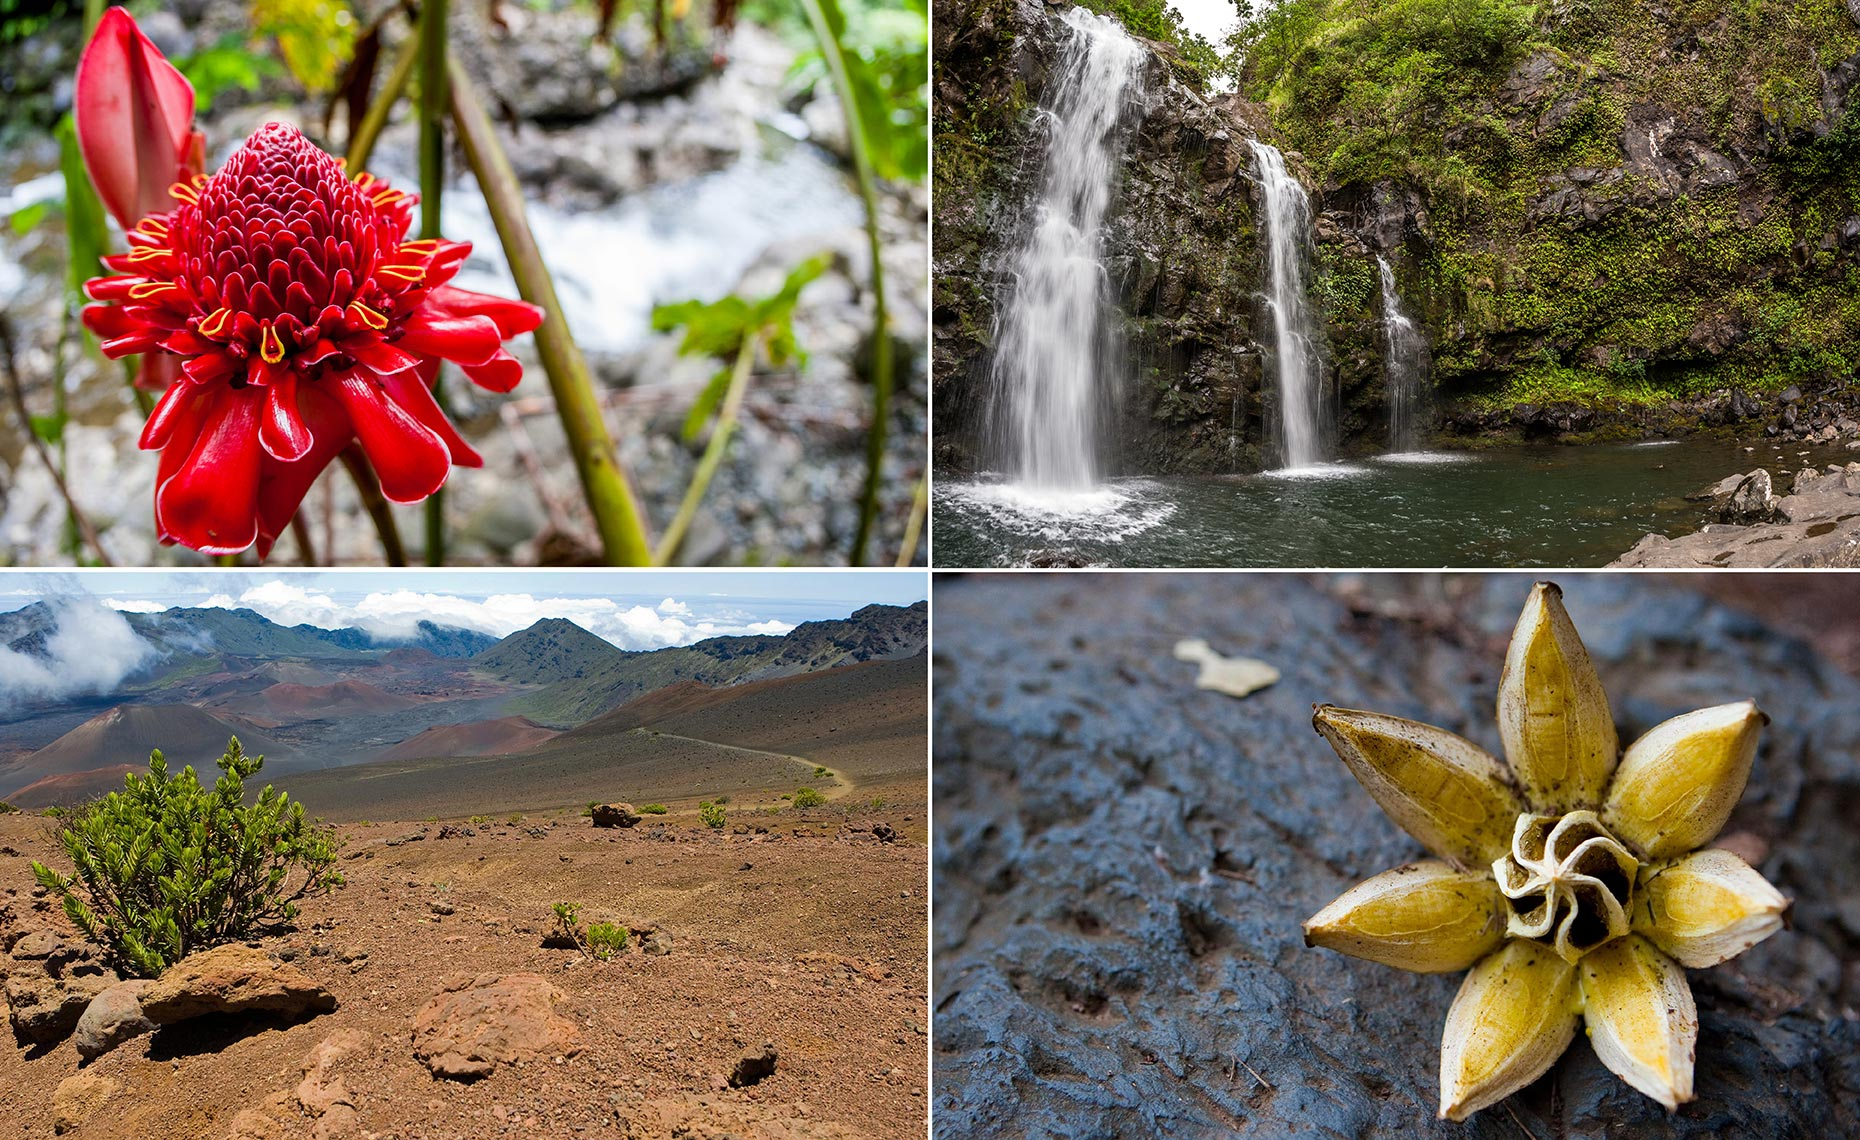 43_Hana_Volcano_Haleakala_National_Park_Maui_Hawaii_Environment_Landscape_Chris_Wellhausen_Photography.JPG